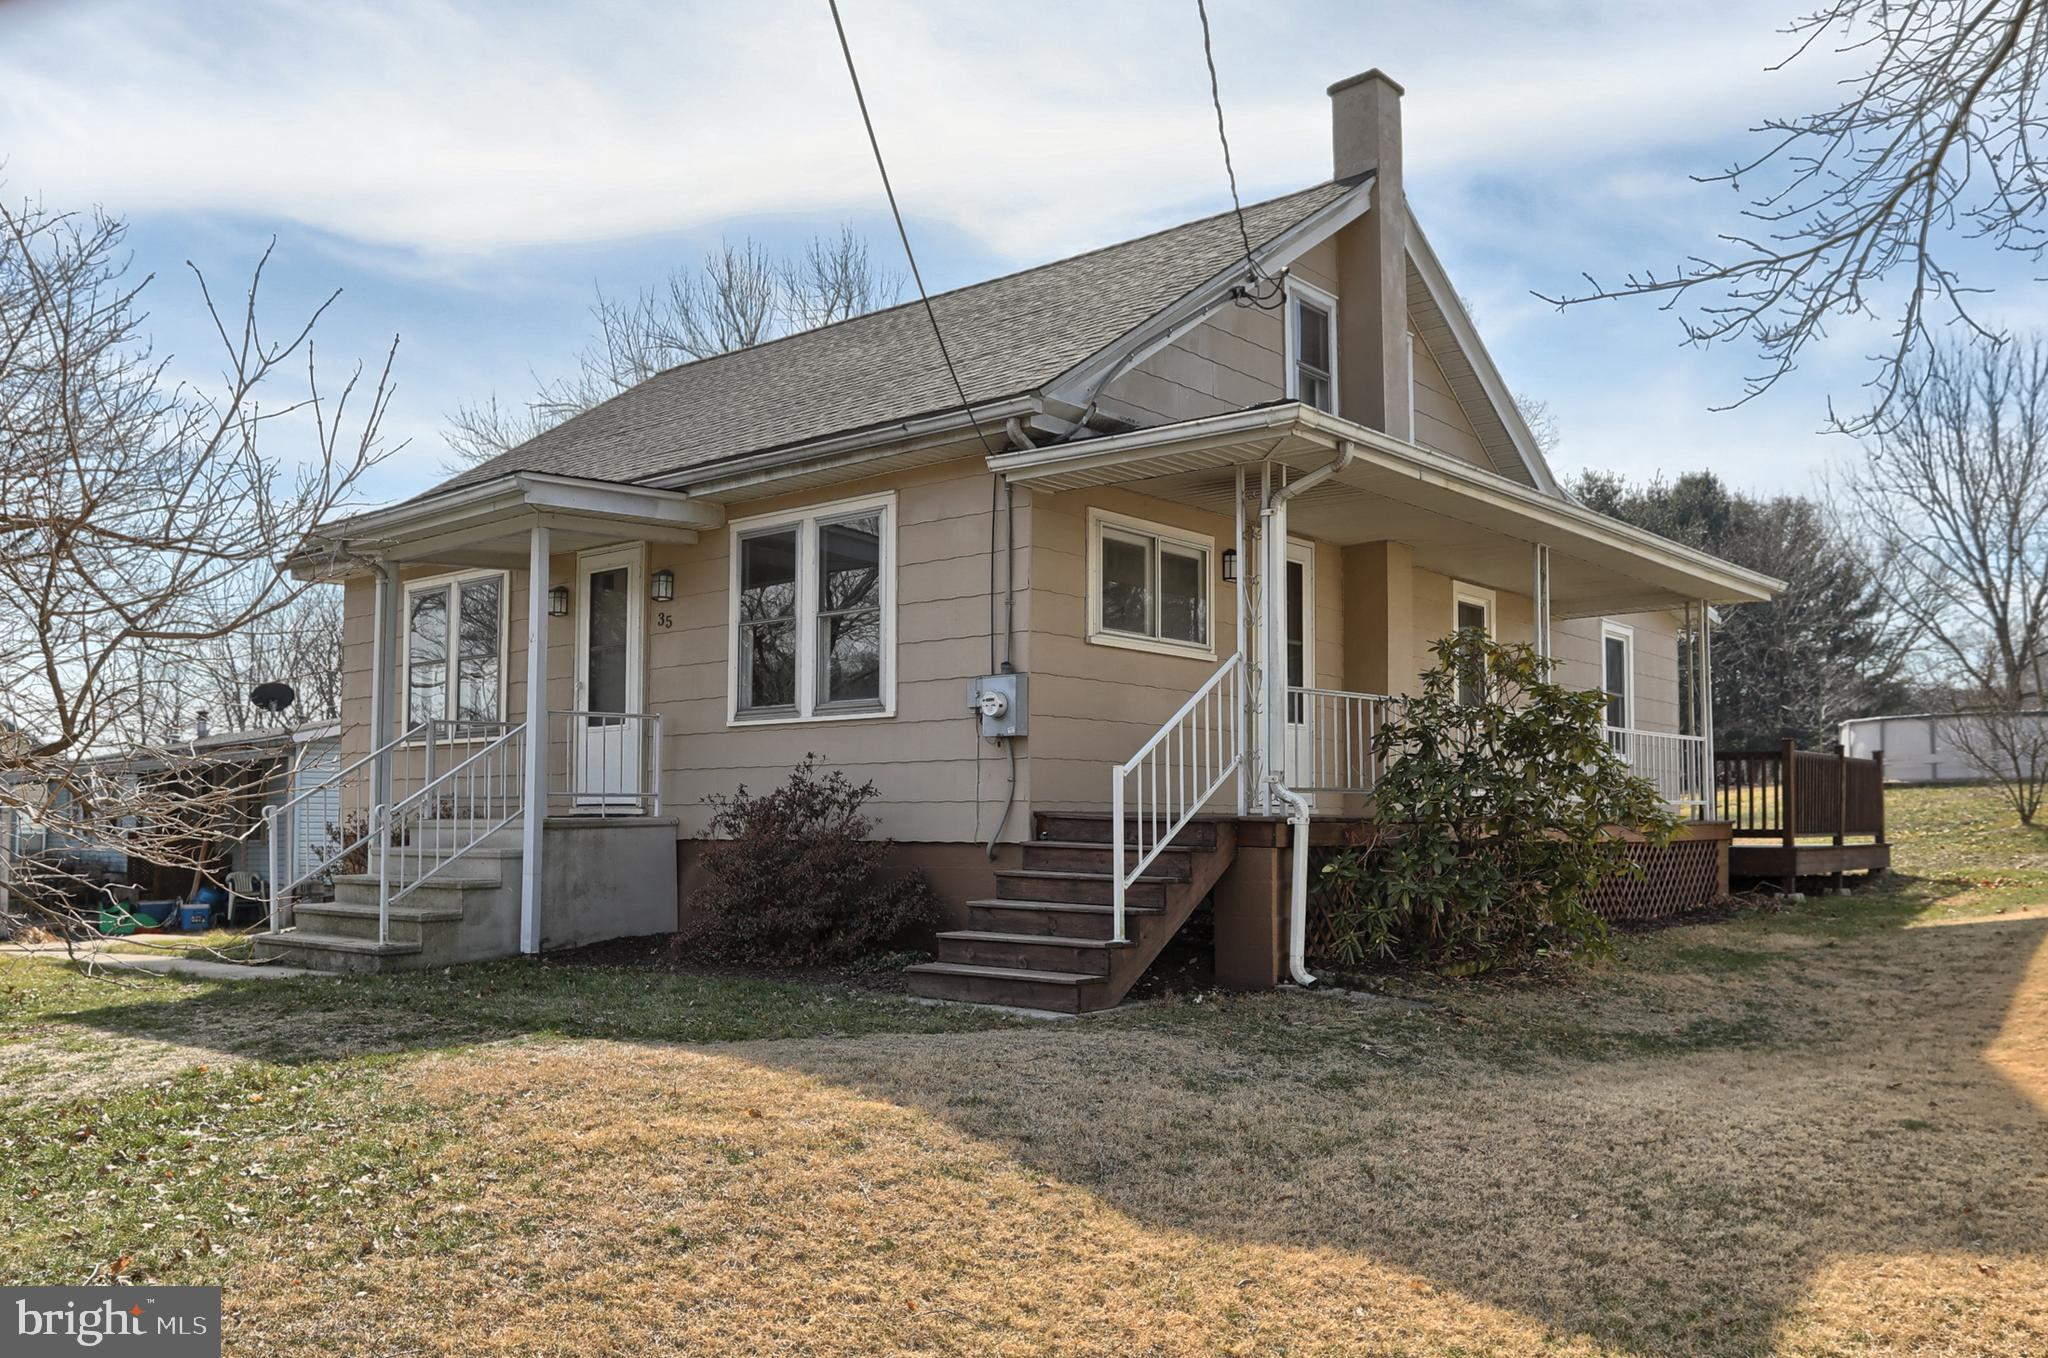 35 N GREENVIEW ROAD, SCHUYLKILL HAVEN, PA 17972